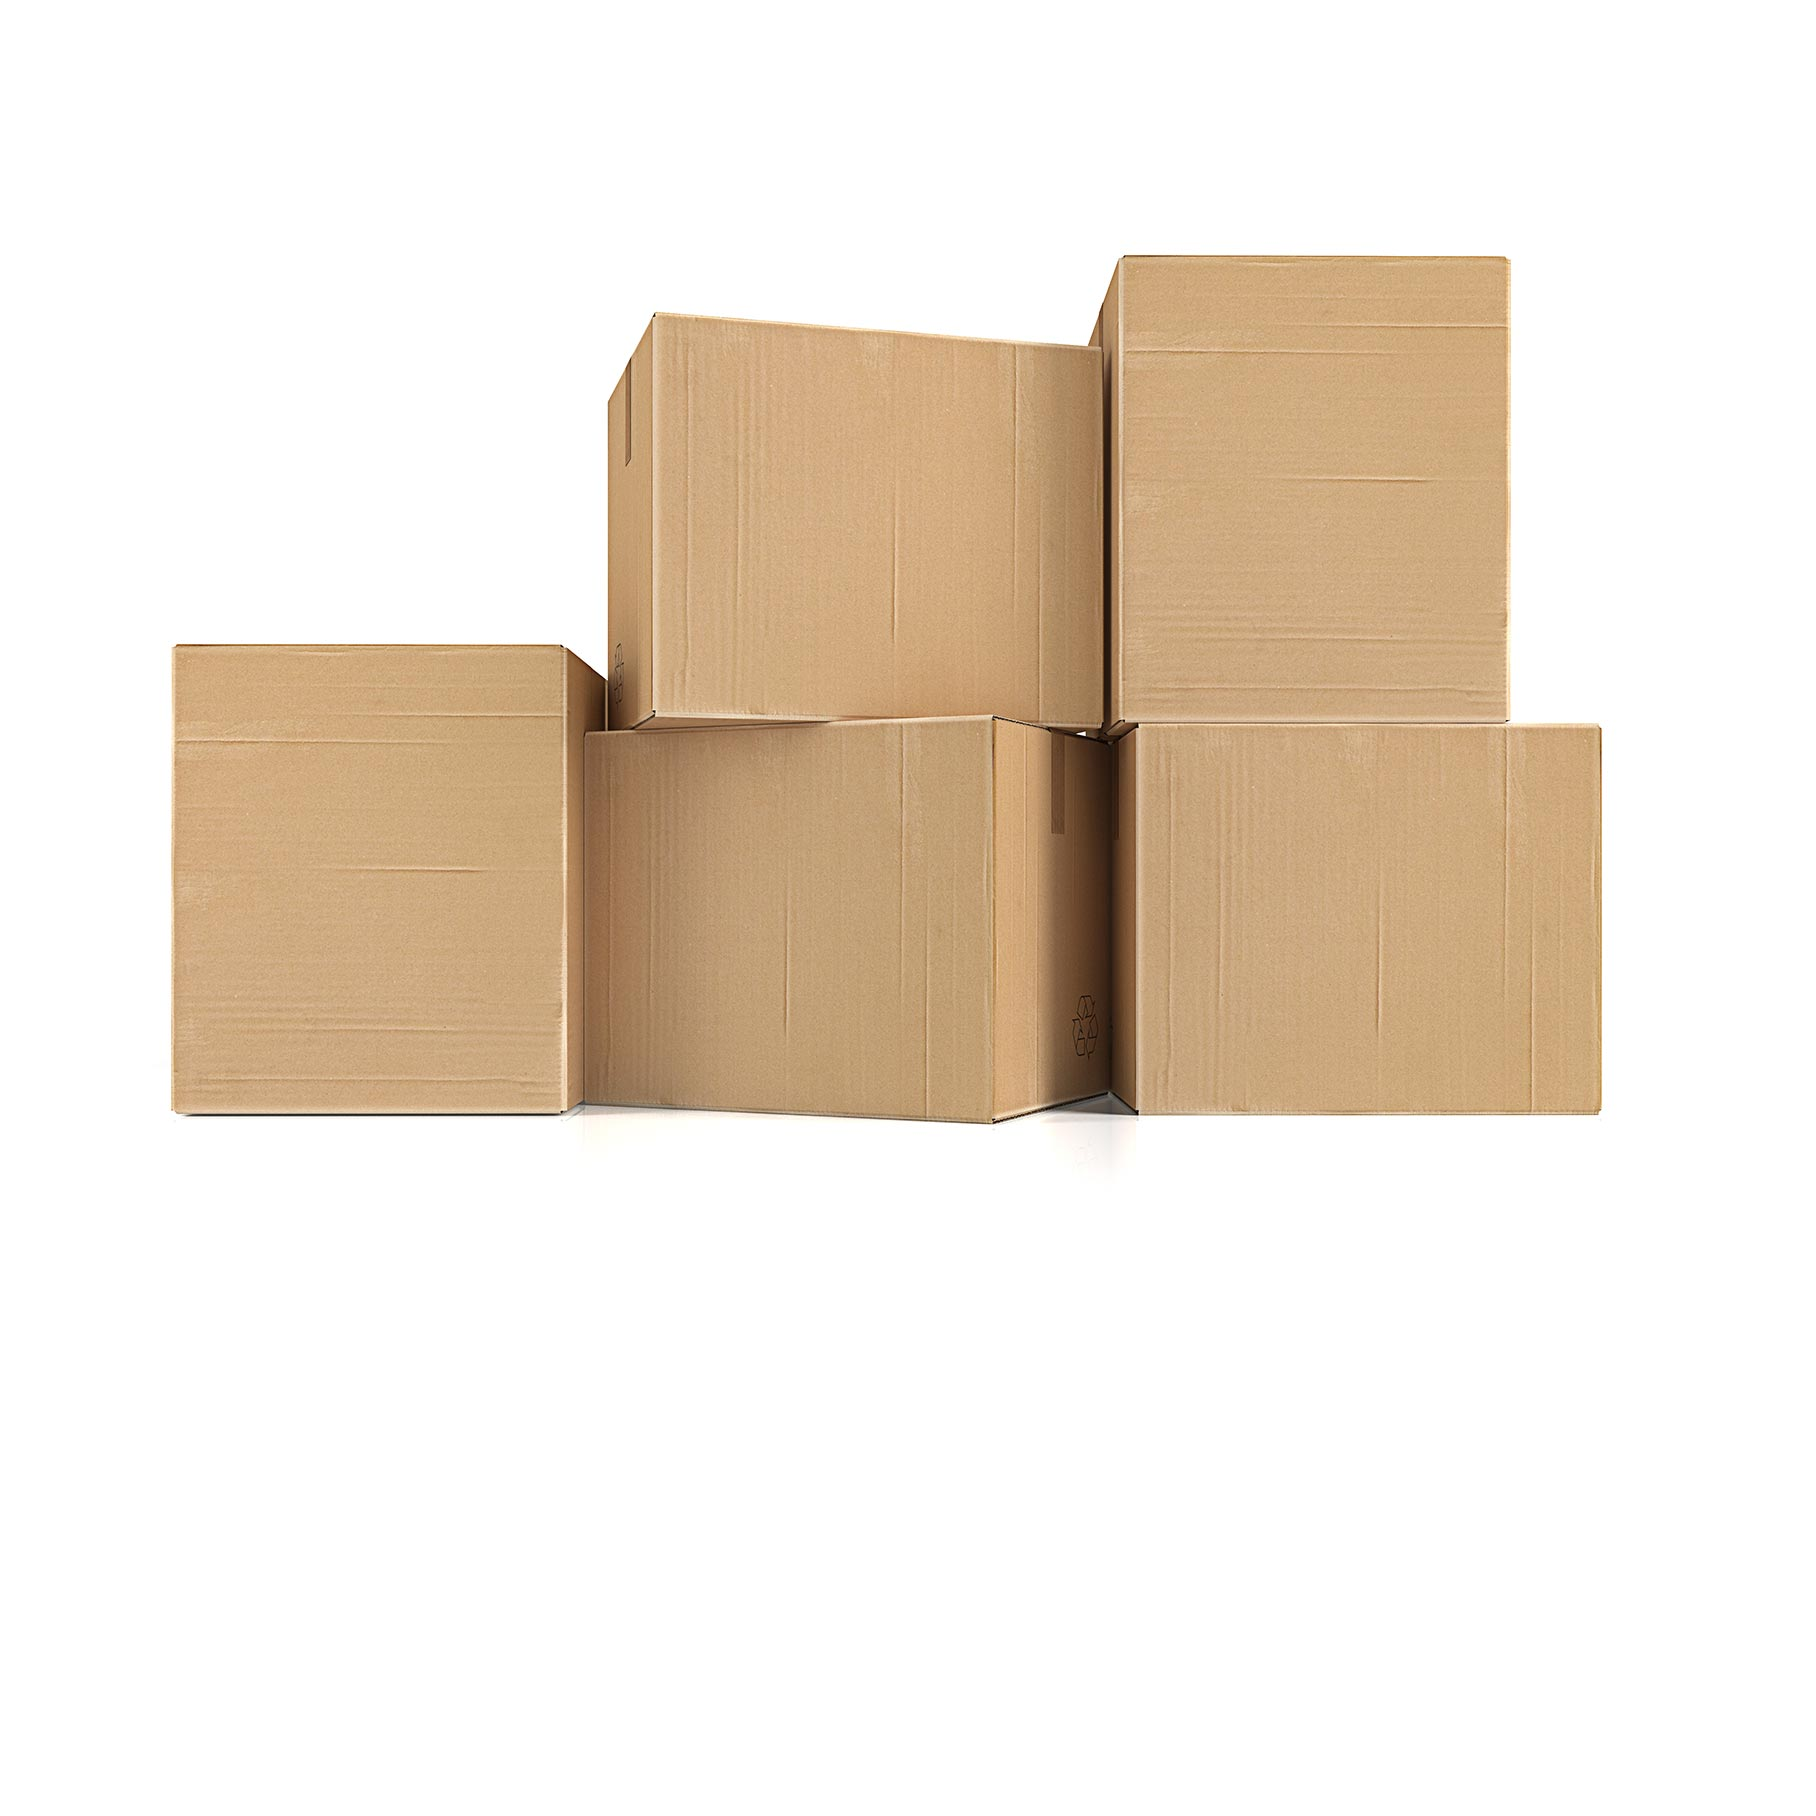 image of cardboard boxes